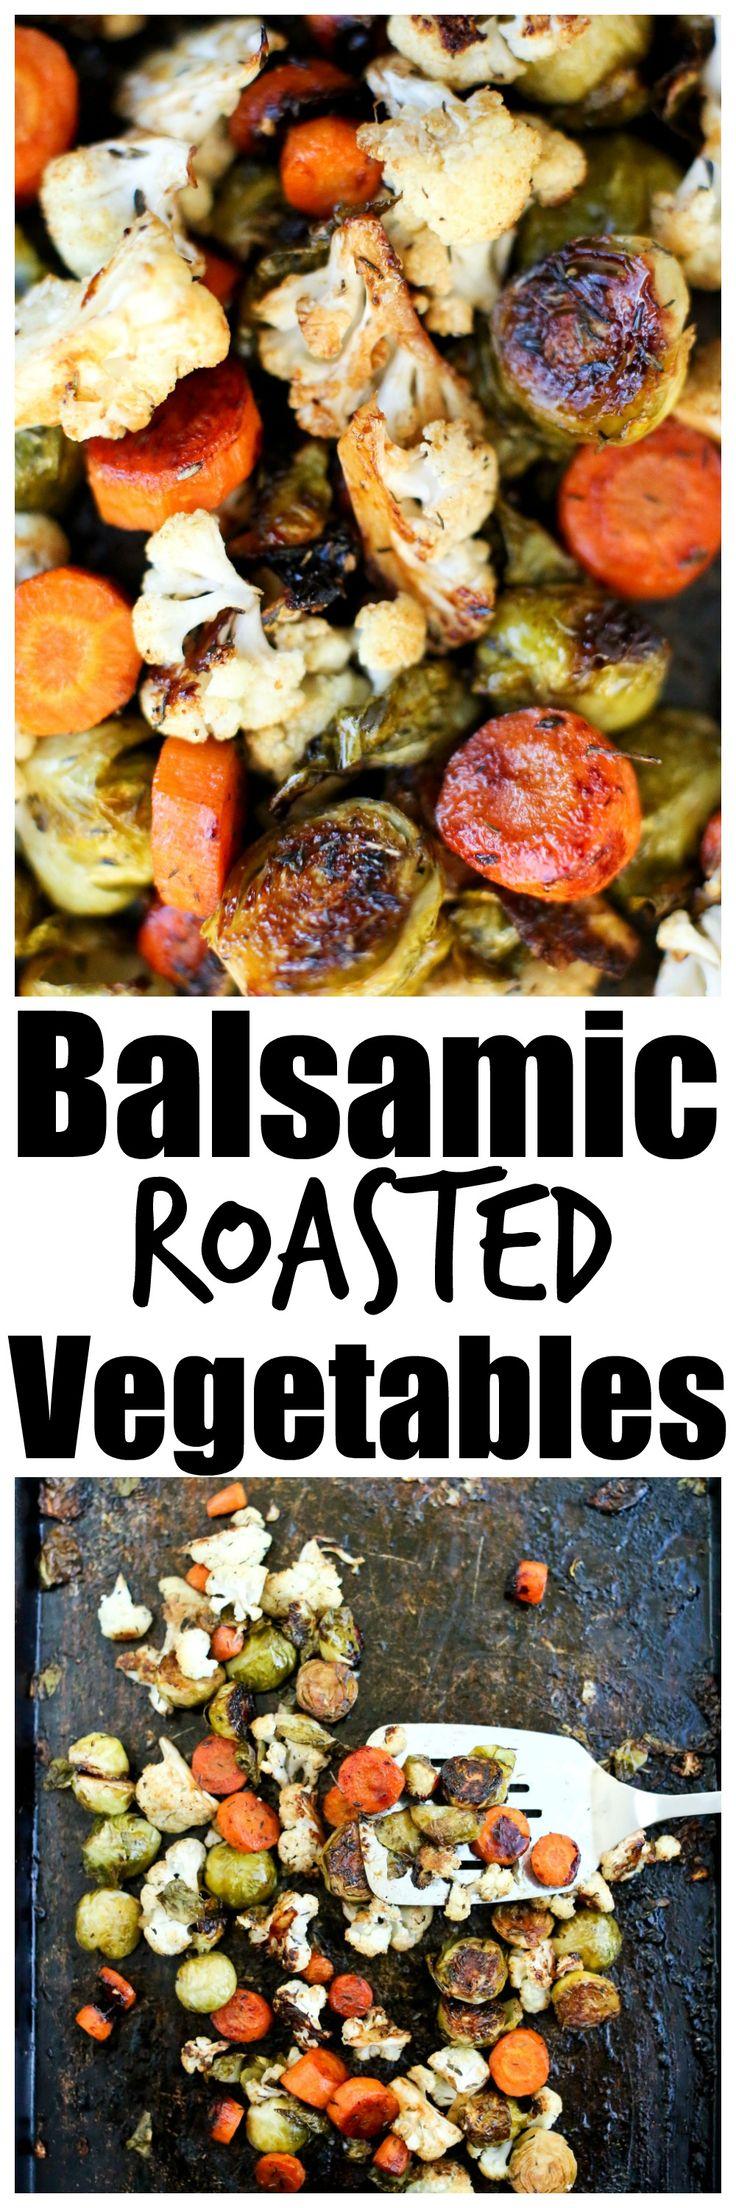 AMAZING flavor in these Balsamic Roasted Vegetables. Great healthy recipe for roasted brussels sprouts, carrots, and cauliflower. Vegetables never tasted so good as this side dish.